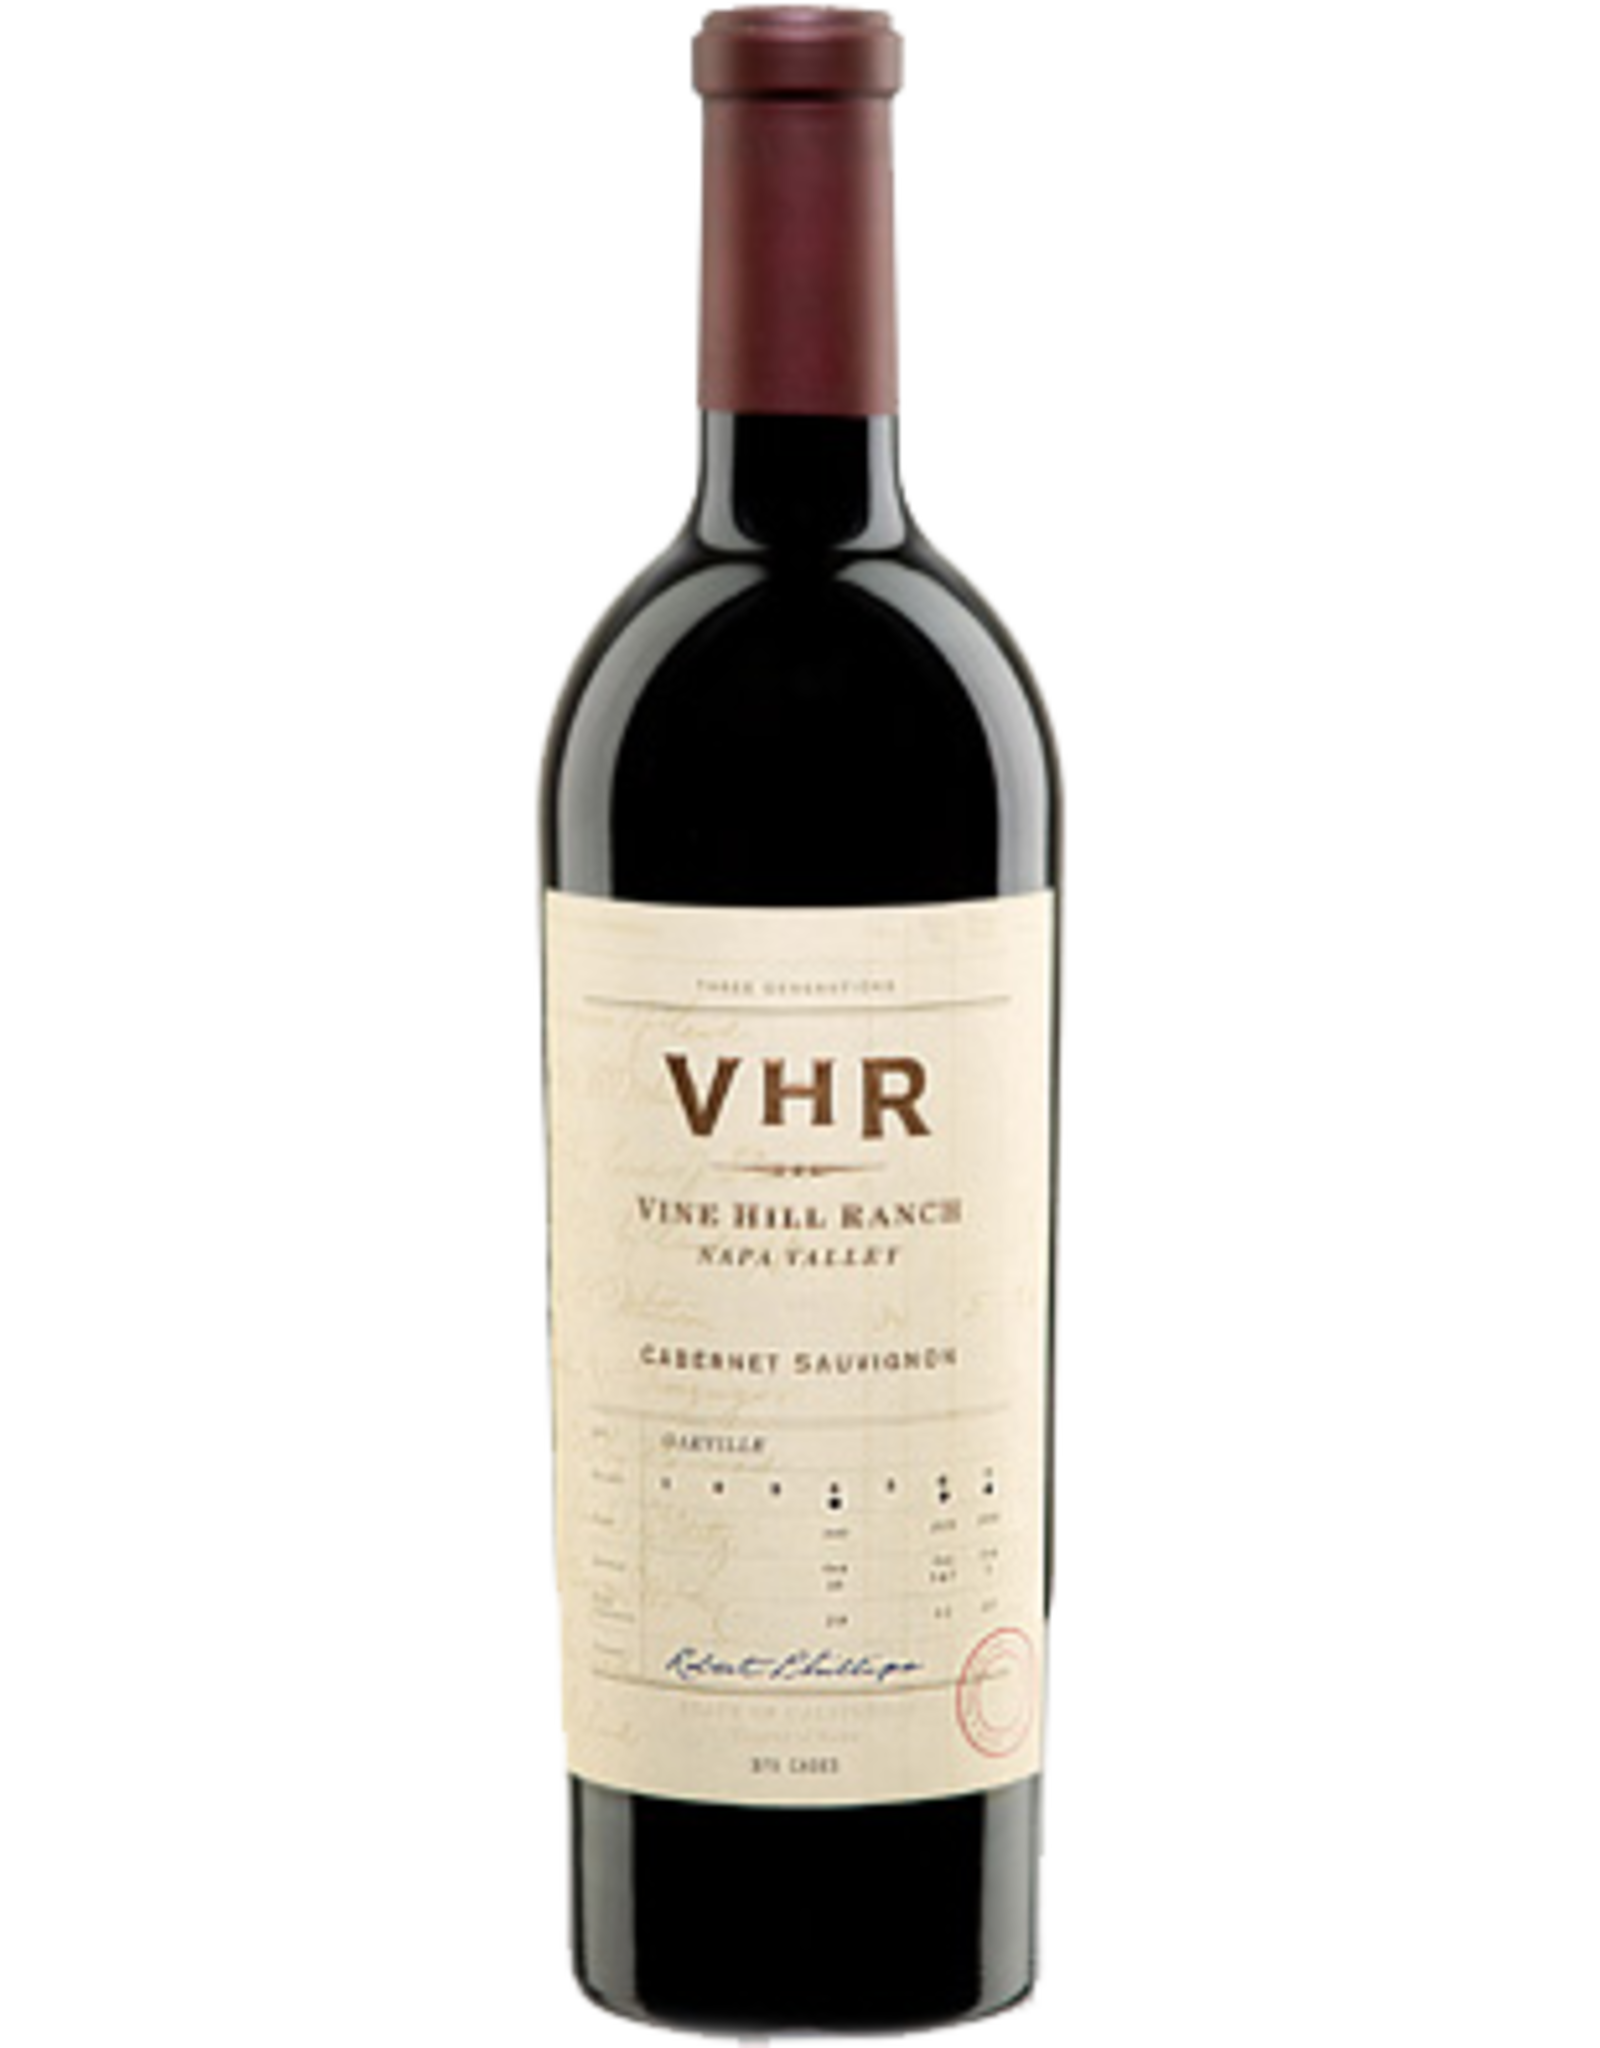 Red Wine 2013, VHR Vine Hill Ranch, Cabernet Sauvignon, Oakville, Napa Valley, California, 14.6% Alc, CT94, VN 98